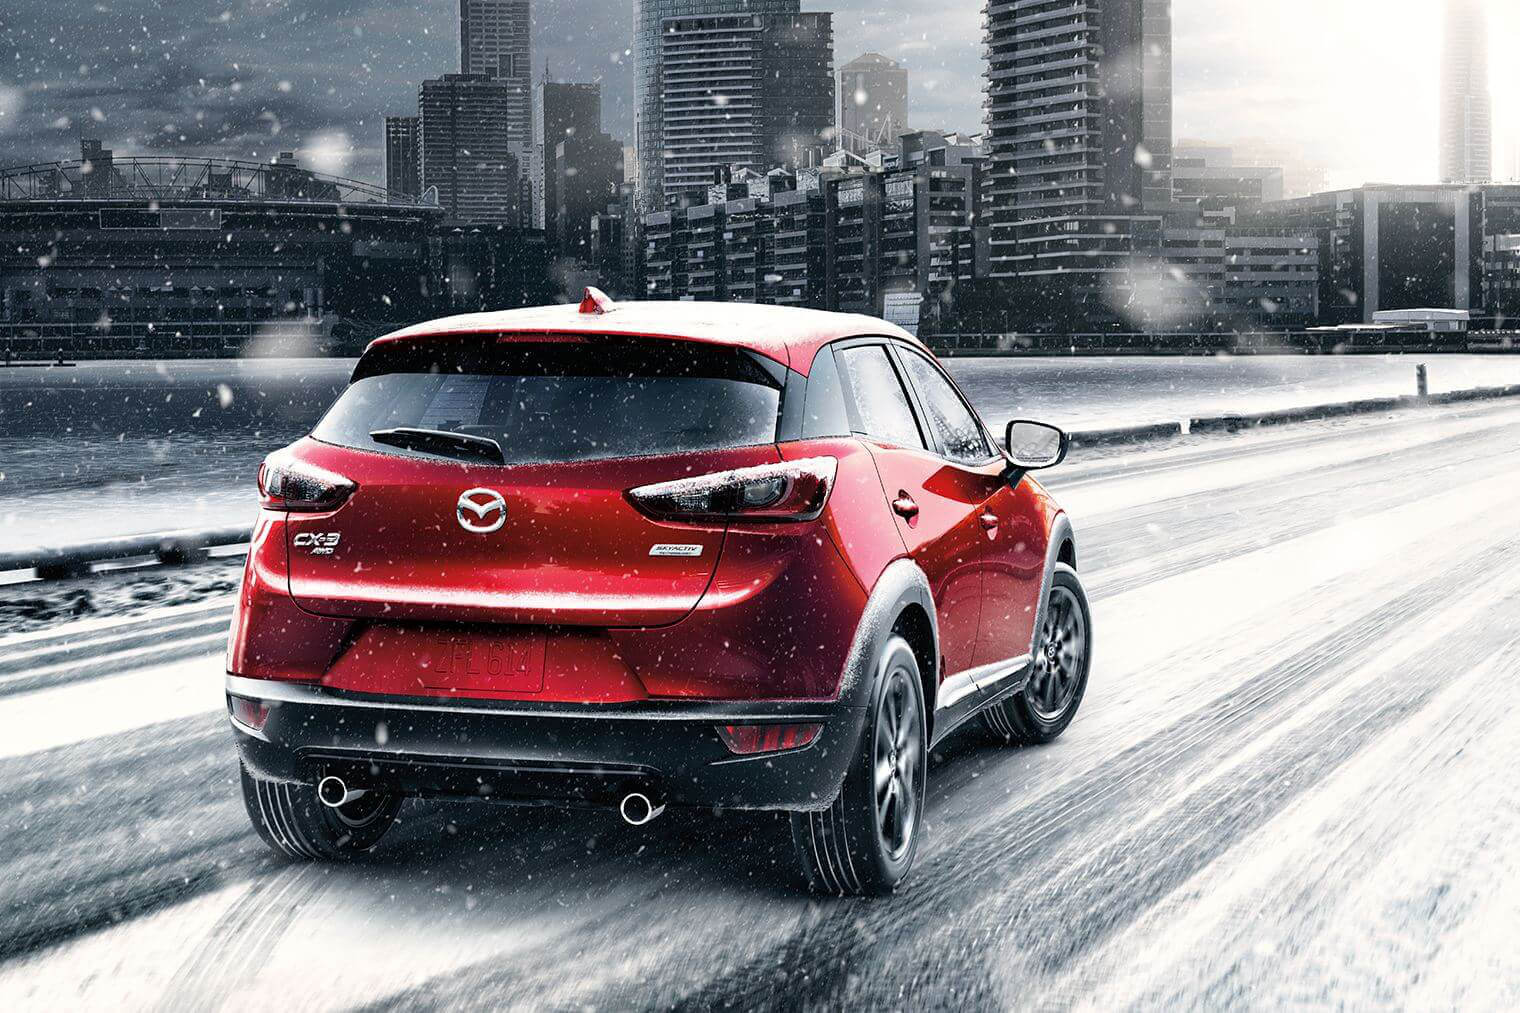 2017 Mazda CX-3 performance in snow